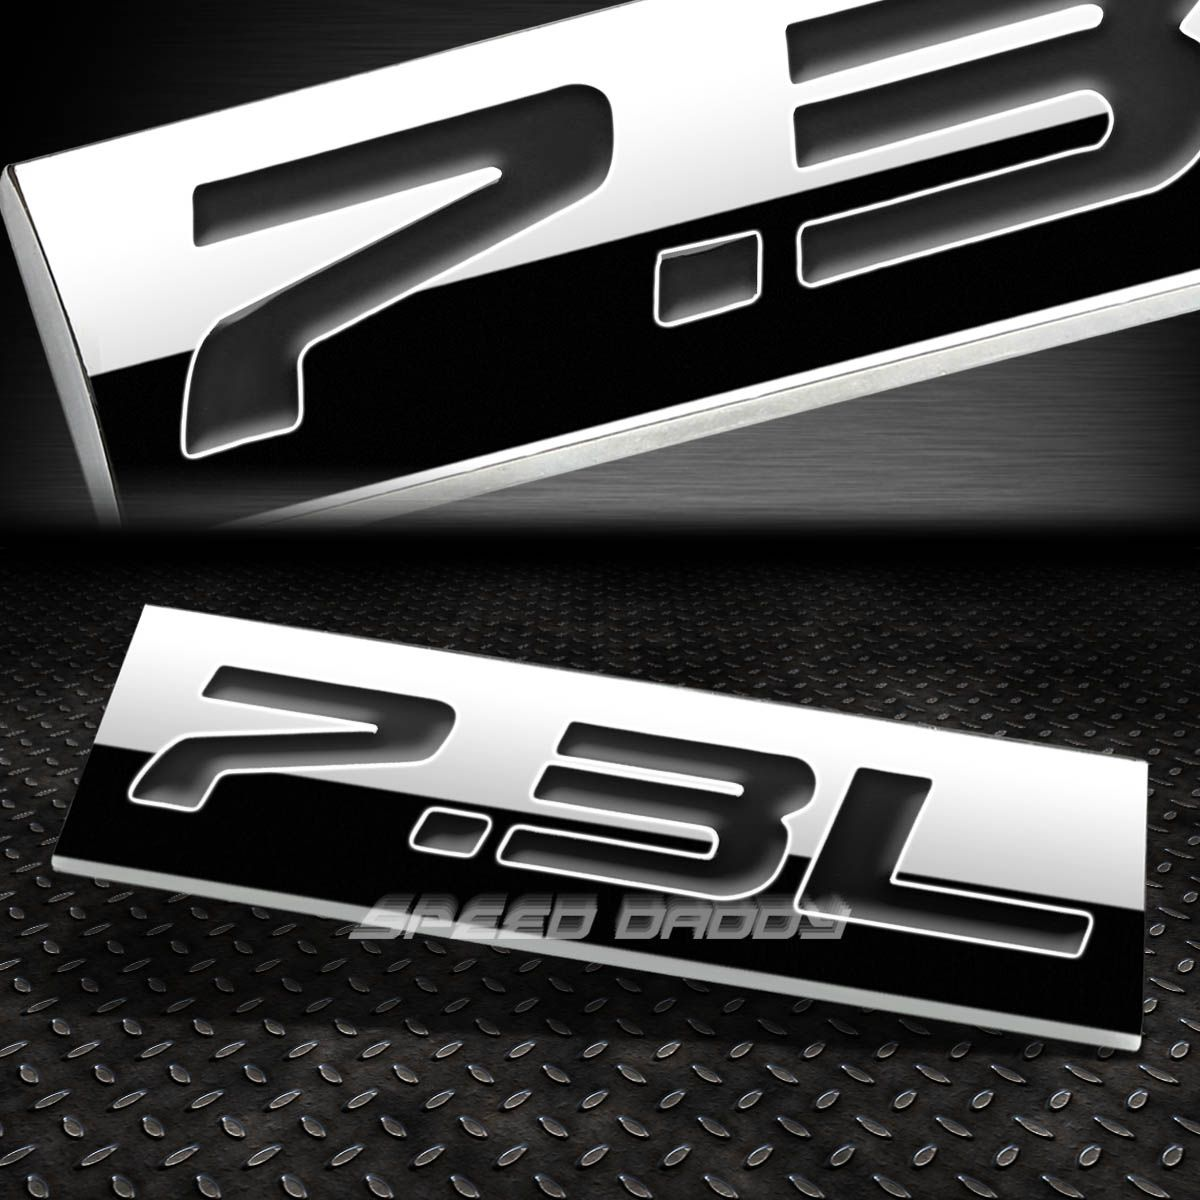 Design of a car bumper - Our Emblem Sticker Is Good For Car Body Decoration For Improving The Appearance Of Your Car Truck Or Any Universal Use Chrome Metal Material Comes With